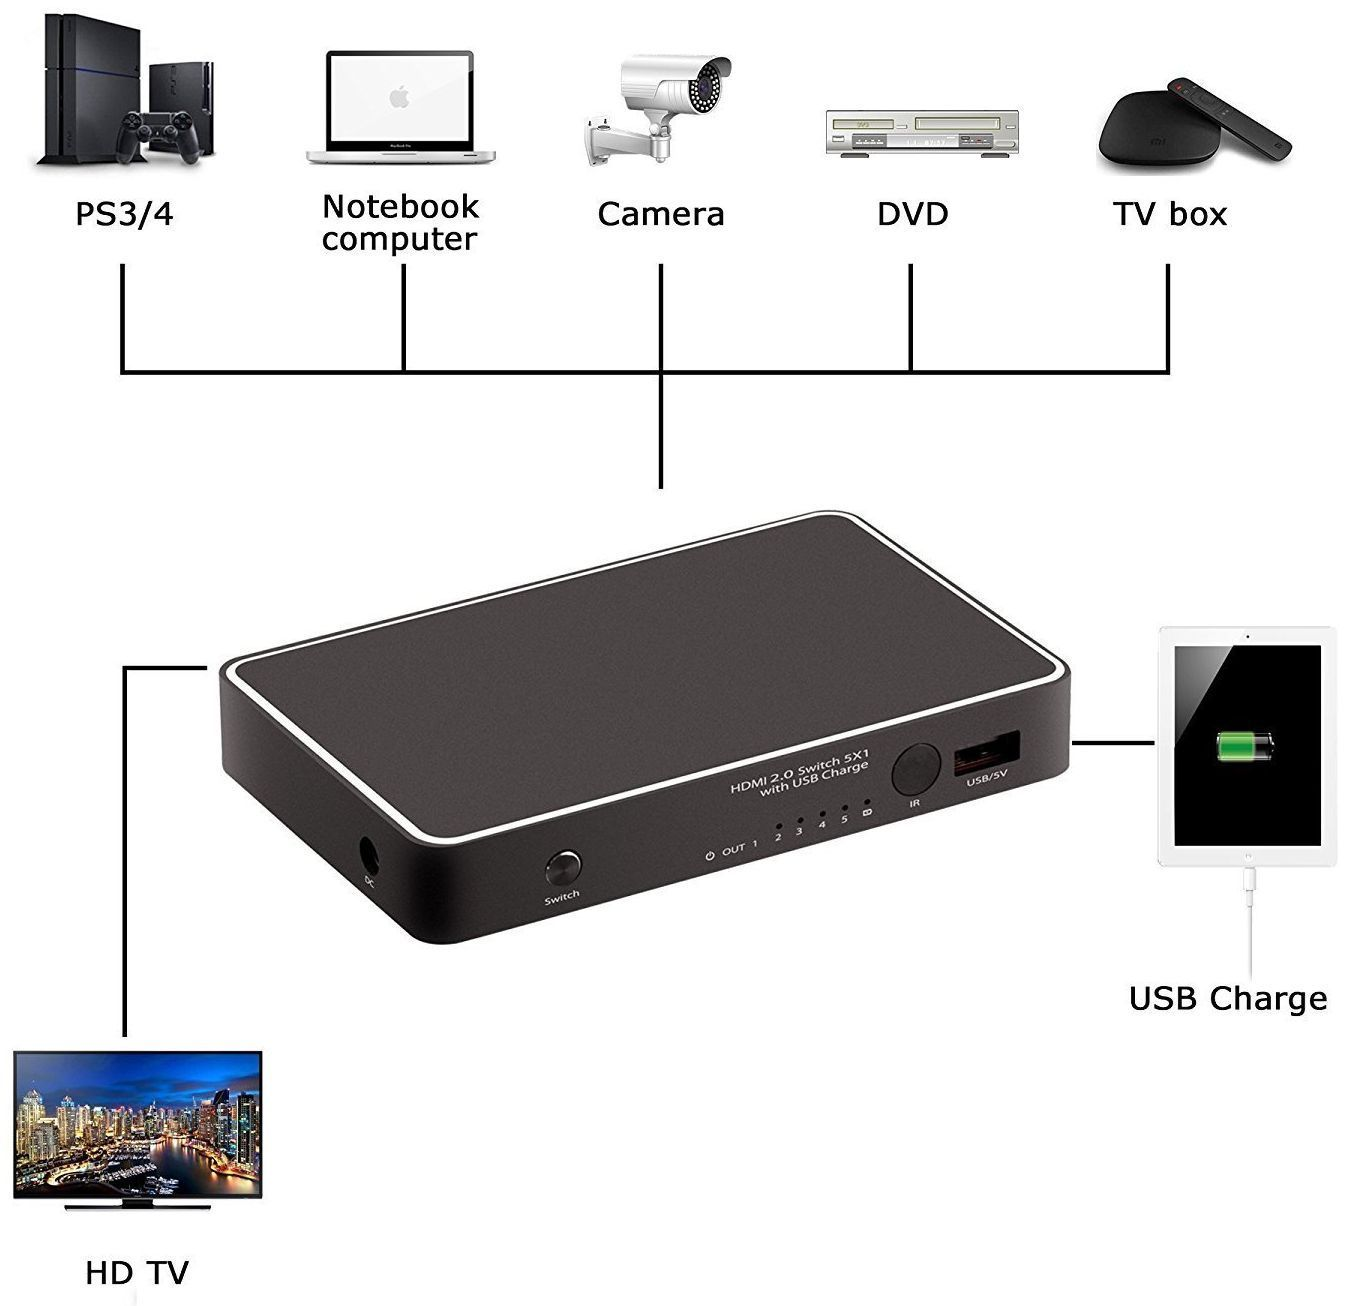 4K 5x1 HDMI Switch with USB Charger